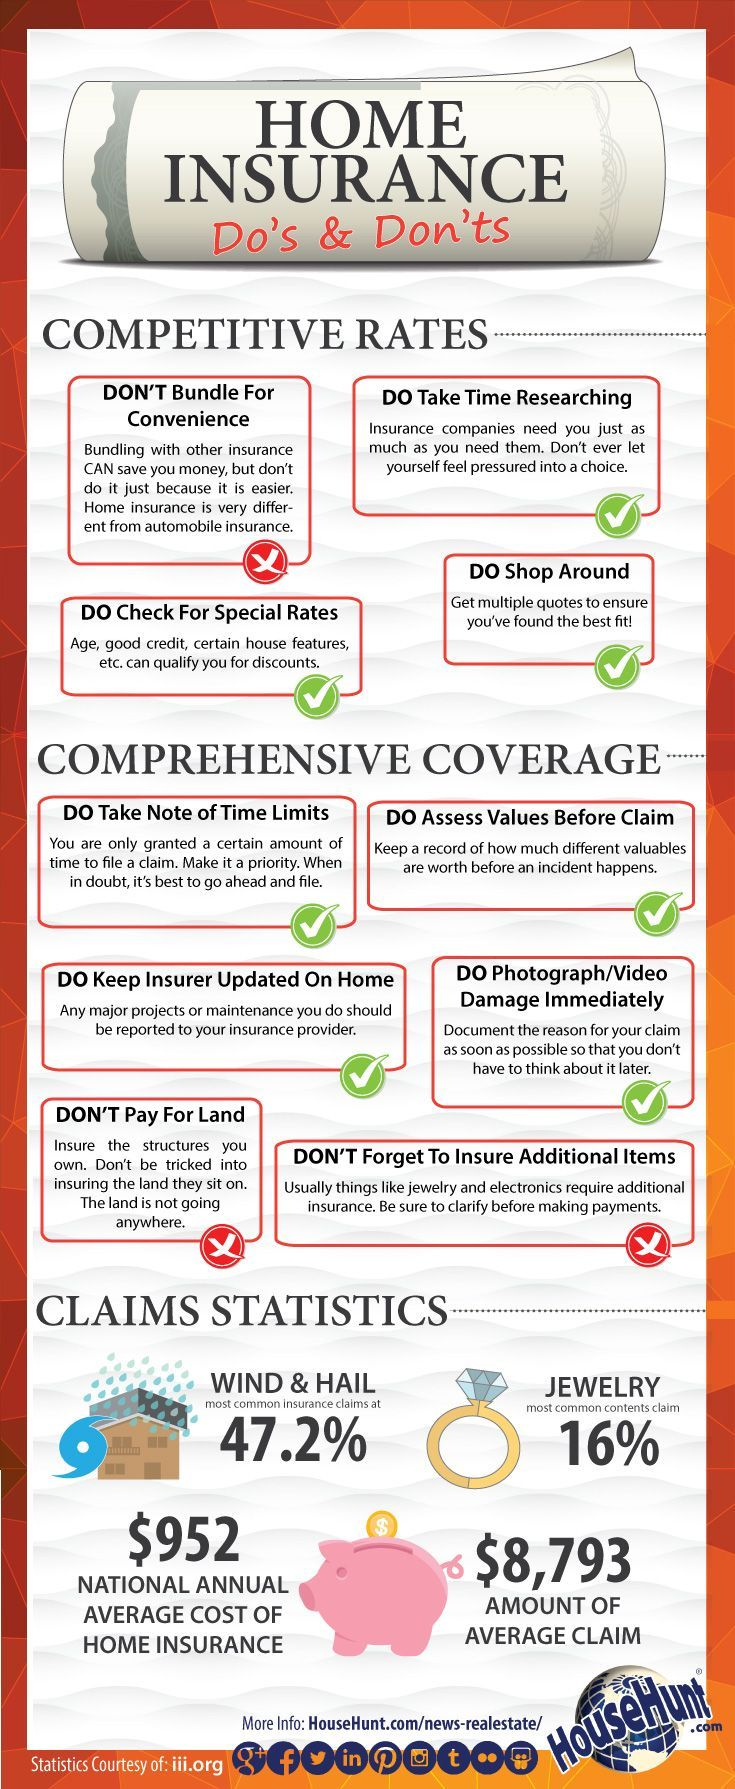 Homeowners Insurance Quote Fascinating 19 Best Home Insurance Images On Pinterest  Home Insurance Real . Decorating Design